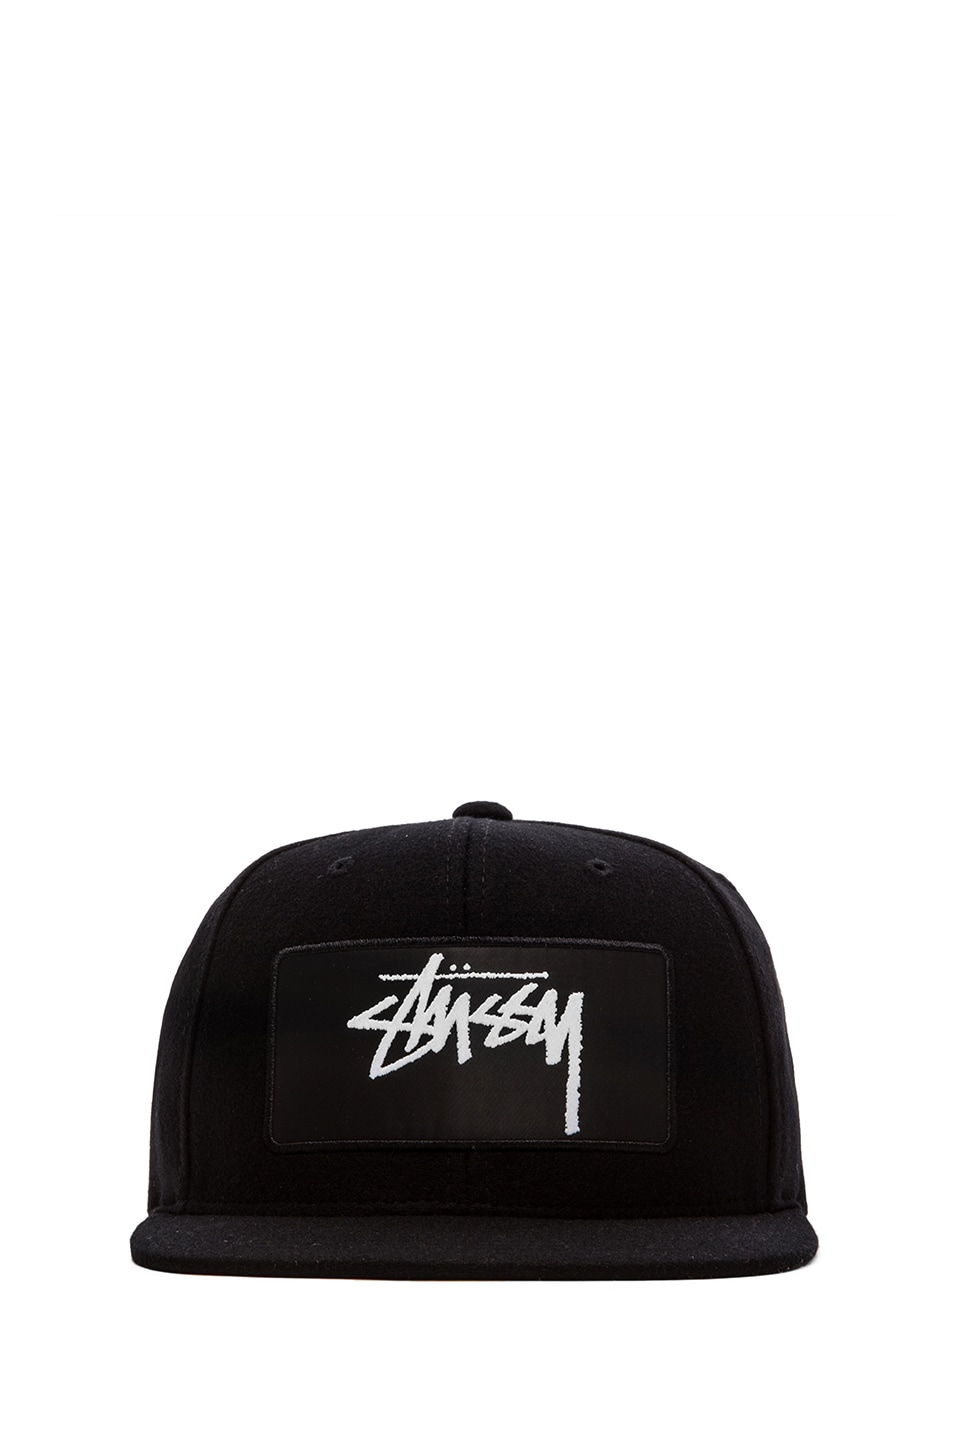 Stussy Lux Patch Strapback in Black